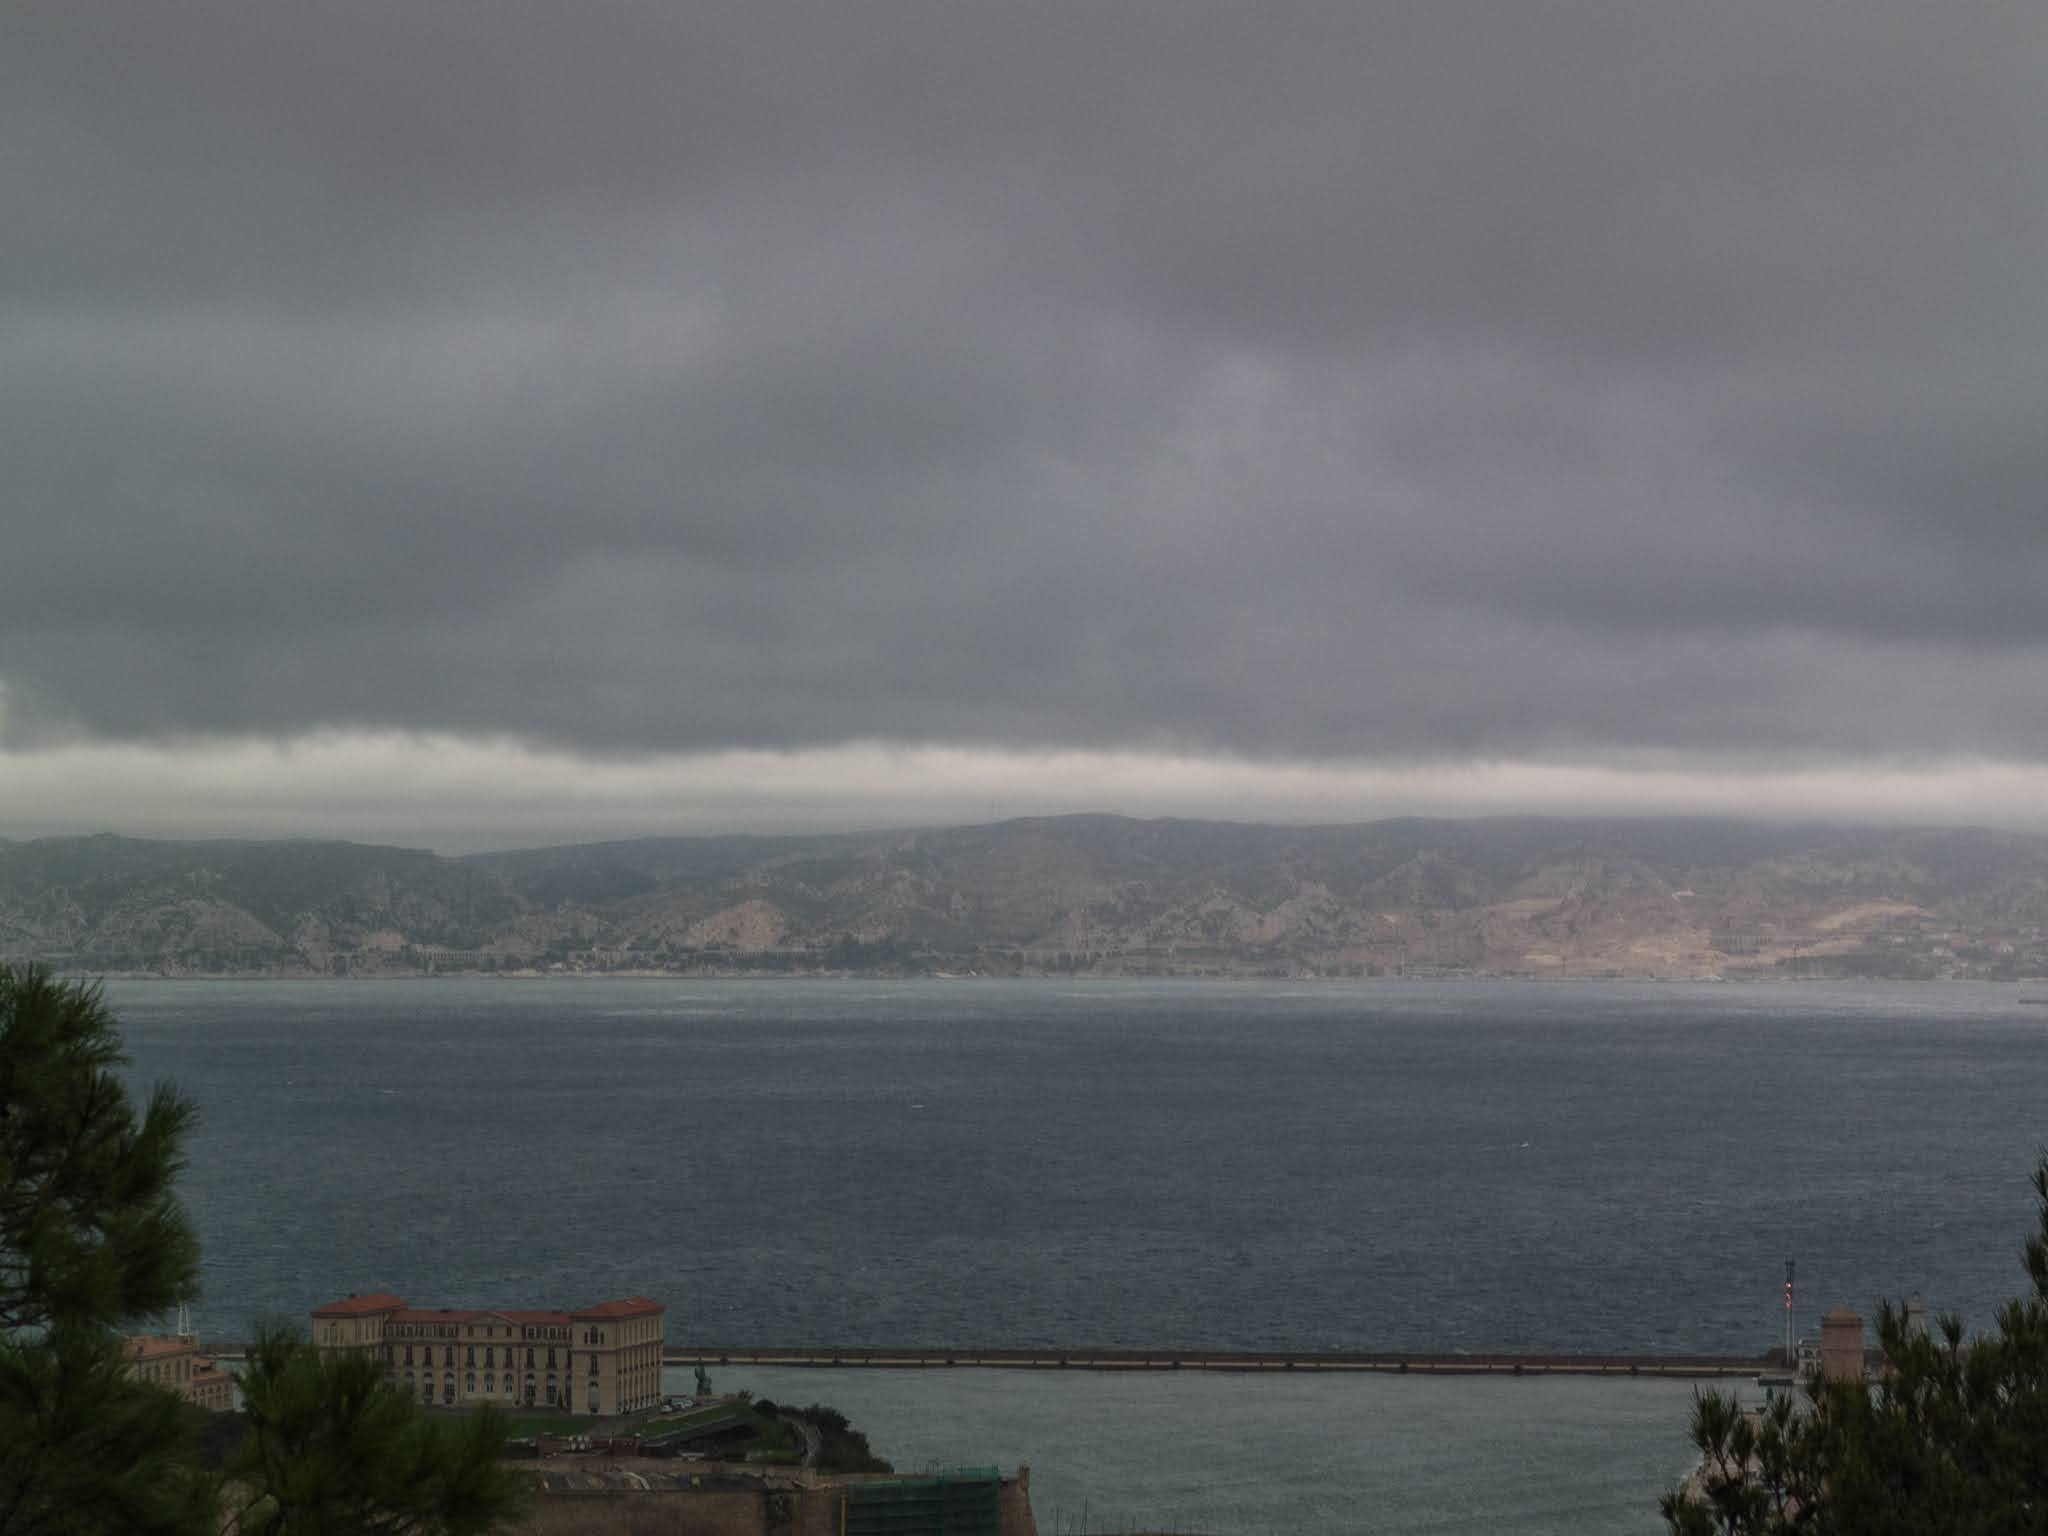 View of the Marseille harbour on a cloudy day.